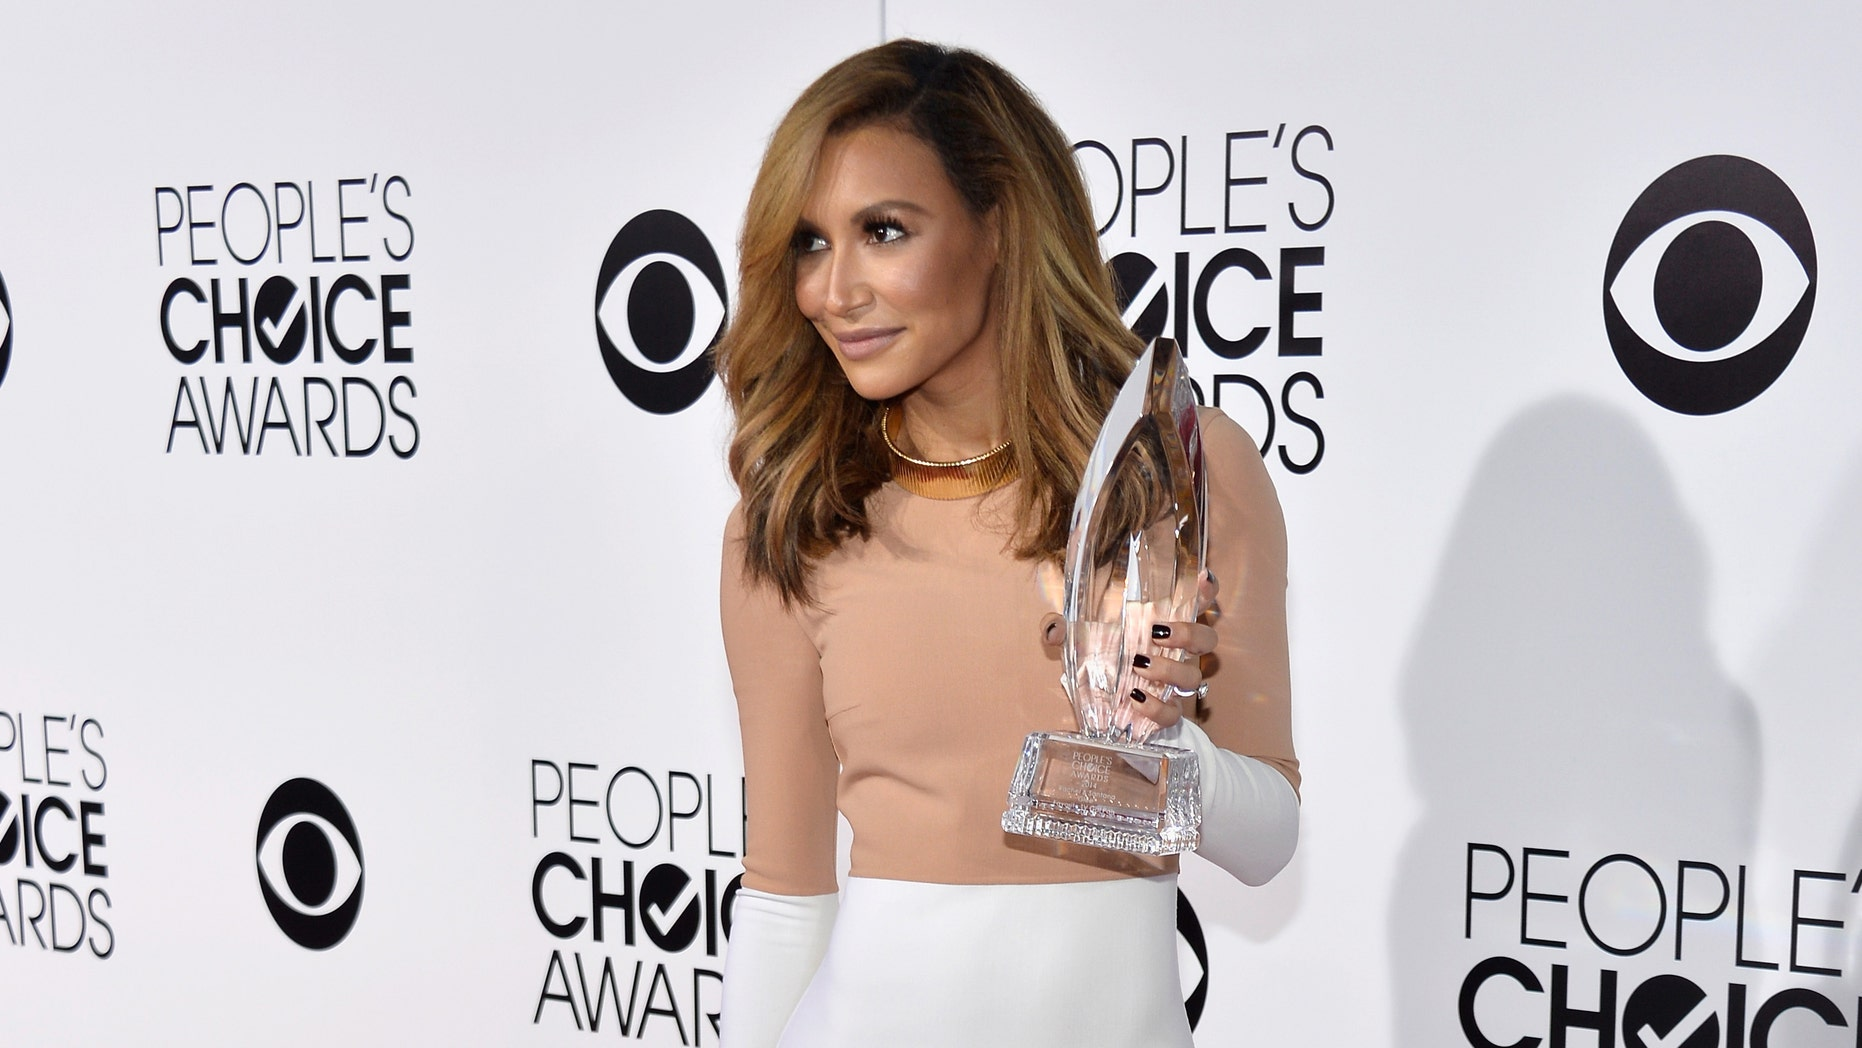 LOS ANGELES, CA - JANUARY 08:  Actress Naya Rivera attends The 40th Annual People's Choice Awards at Nokia Theatre L.A. Live on January 8, 2014 in Los Angeles, California.  (Photo by Frazer Harrison/Getty Images for The People's Choice Awards)